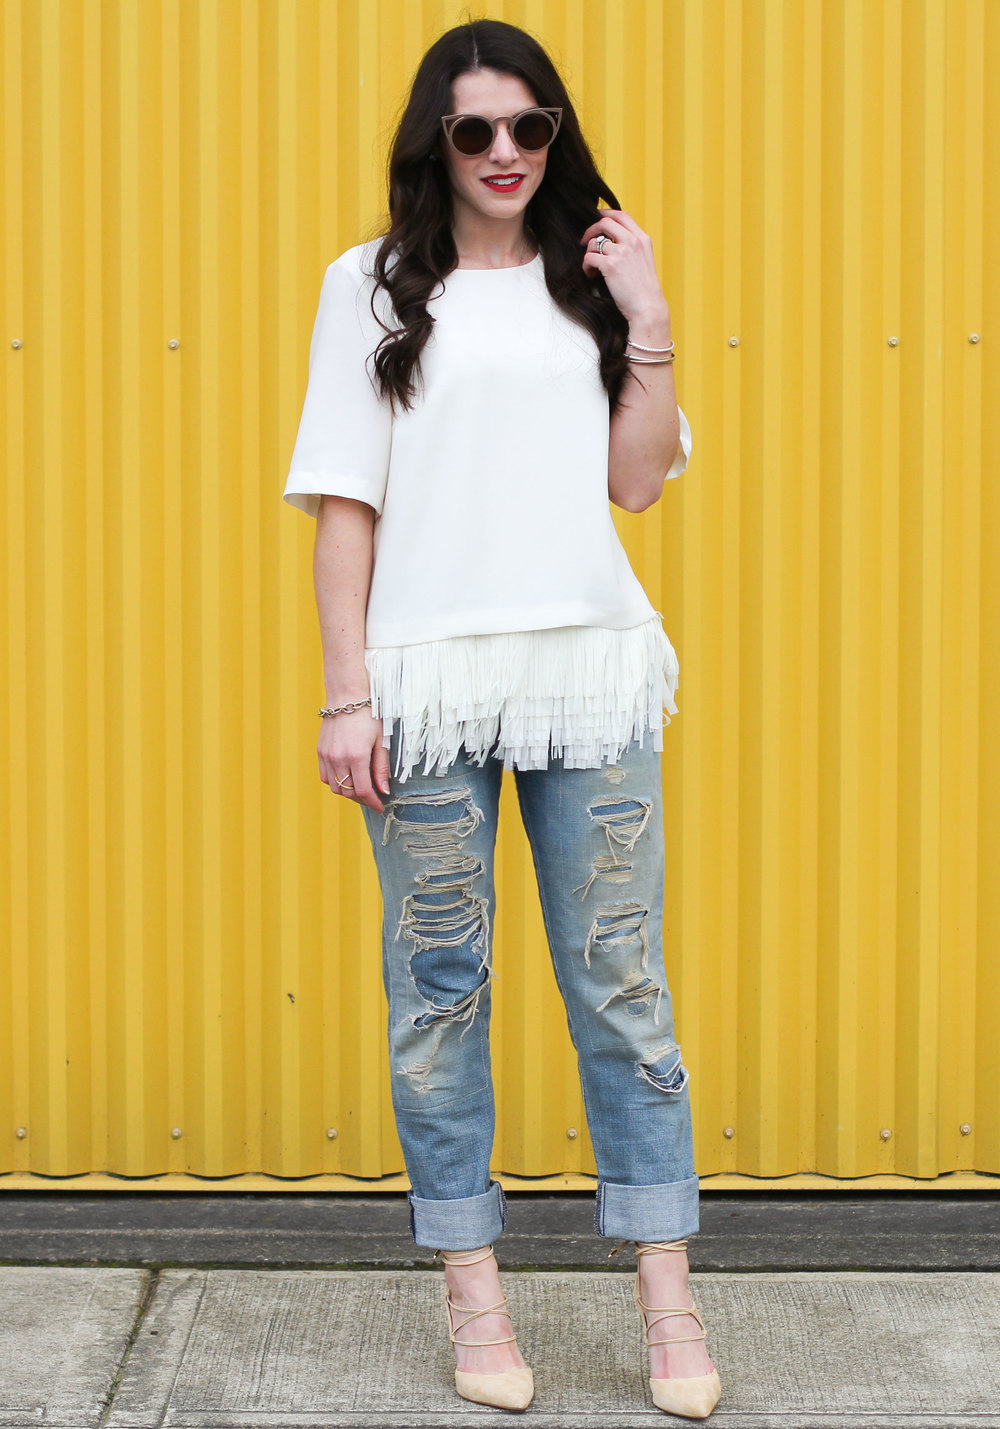 Update Your Wardrobe With One Piece, Banana Republic Crepe Fringe Top, Current/Elliott Boyfriend Jeans, Sam Edelman Dayna Lace-Up Pumps, Vintage Chanel Handbag, Spring Fashion 2016